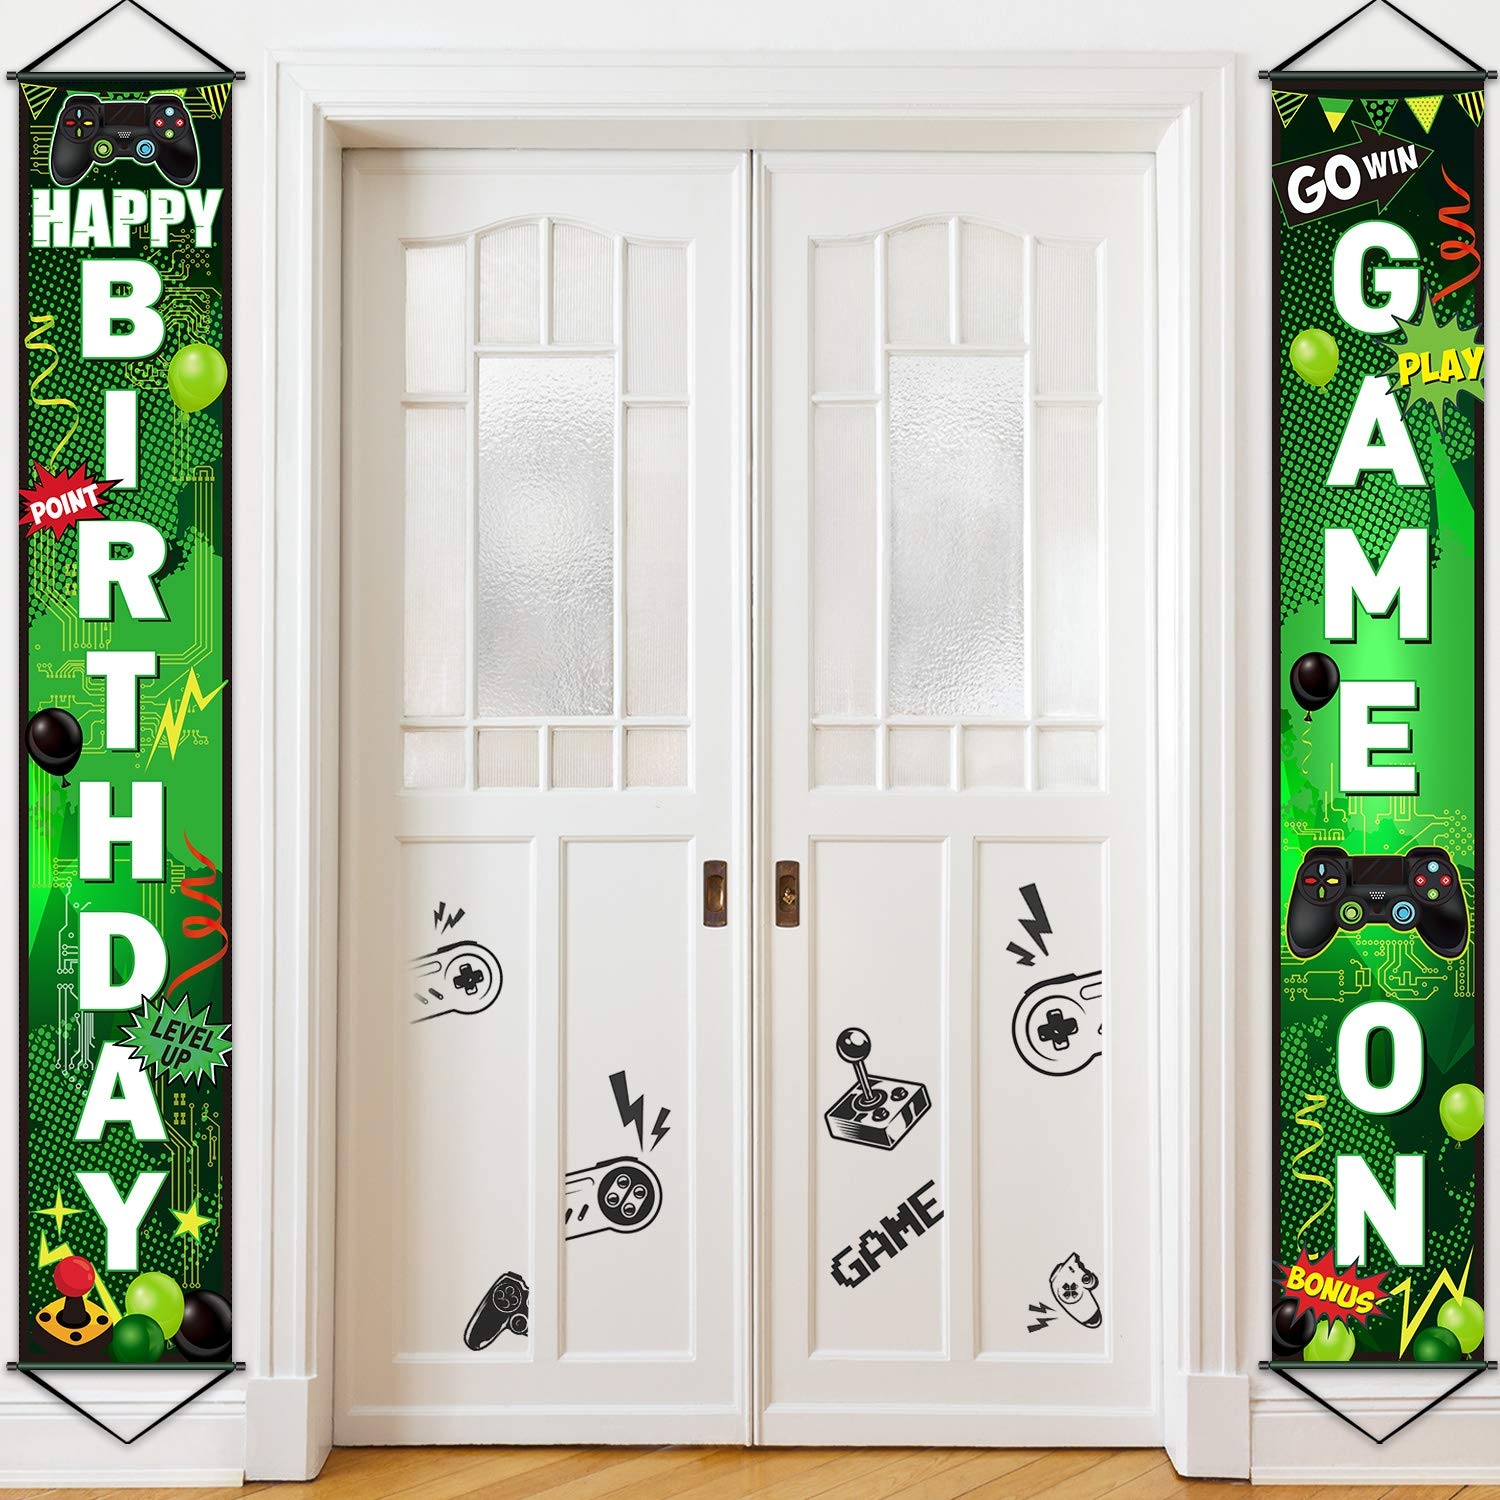 Game Night Party Decorations Personalized Uno Banner Gamer Party Supplies 90s Party Theme Ideas